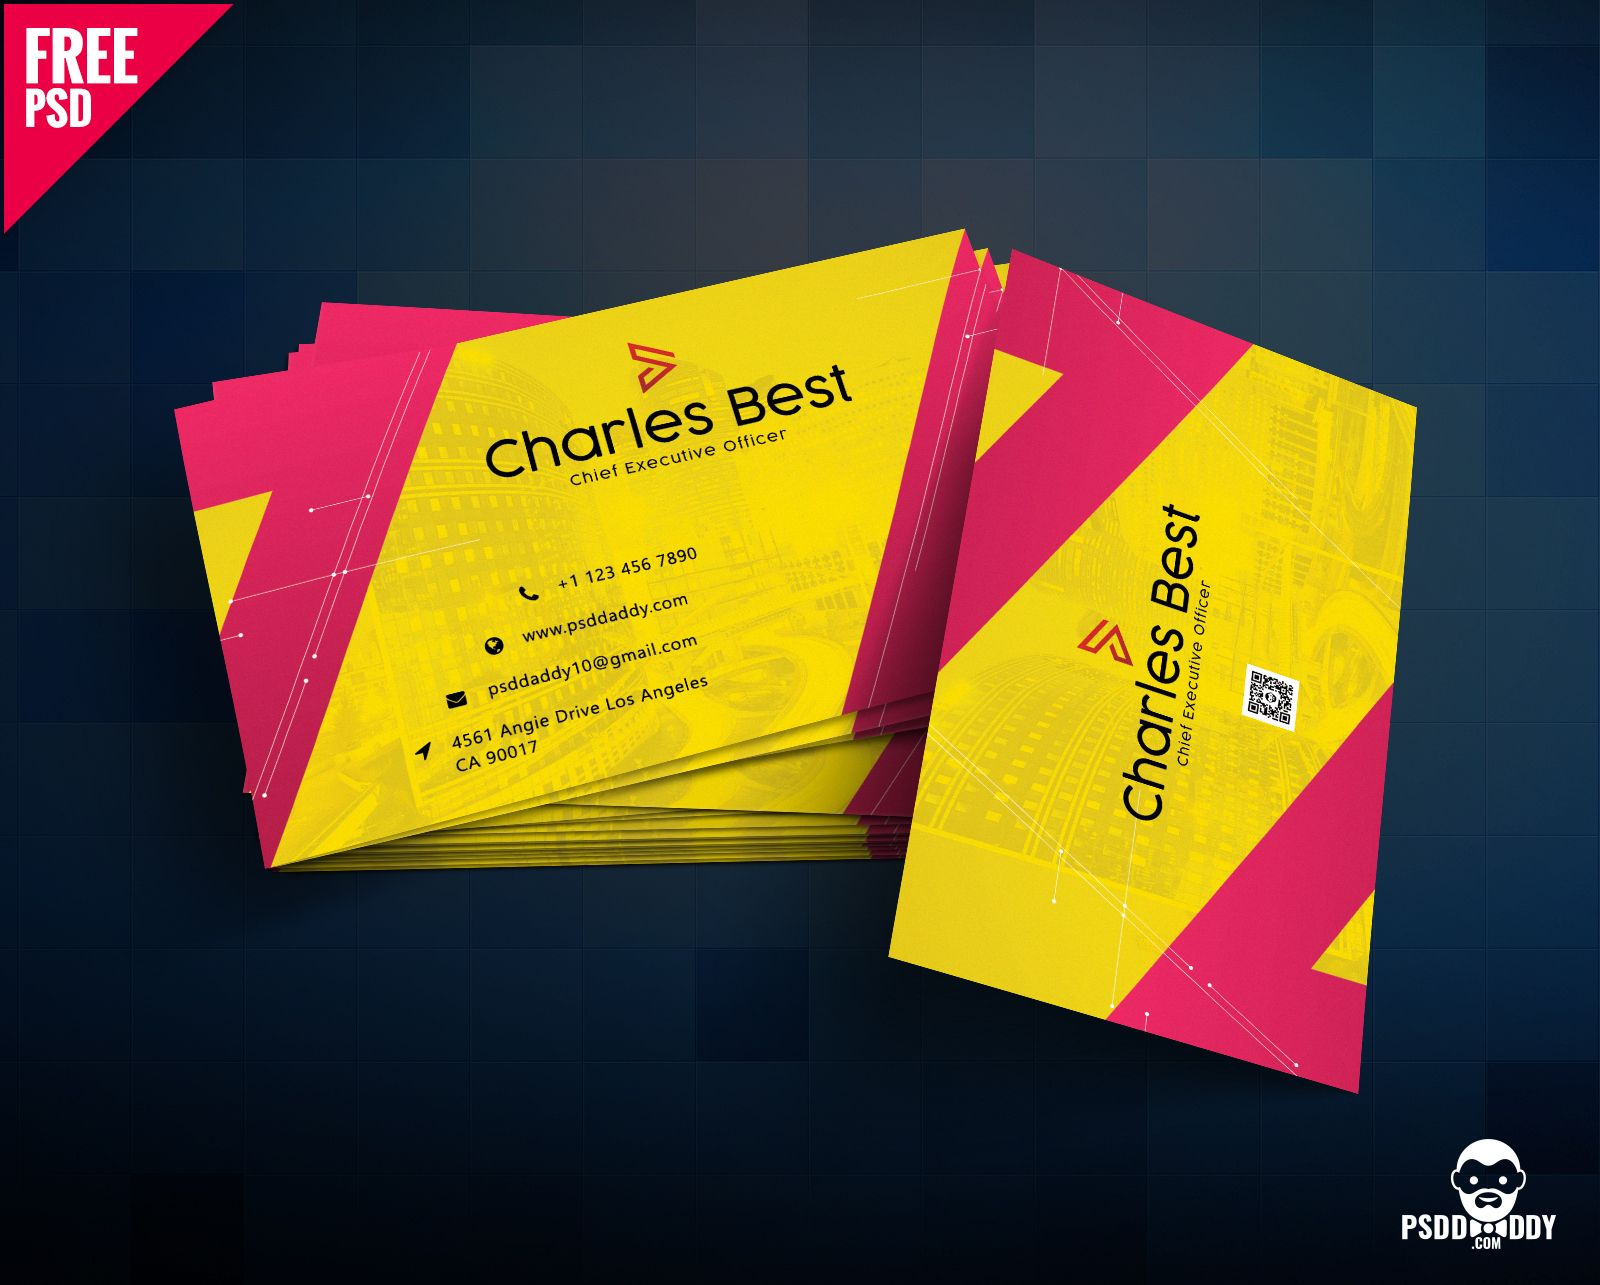 The Marvelous Download Creative Business Card Free Psd Psddaddy In Visi In 2020 Business Card Template Photoshop Business Cards Creative Templates Business Card Psd